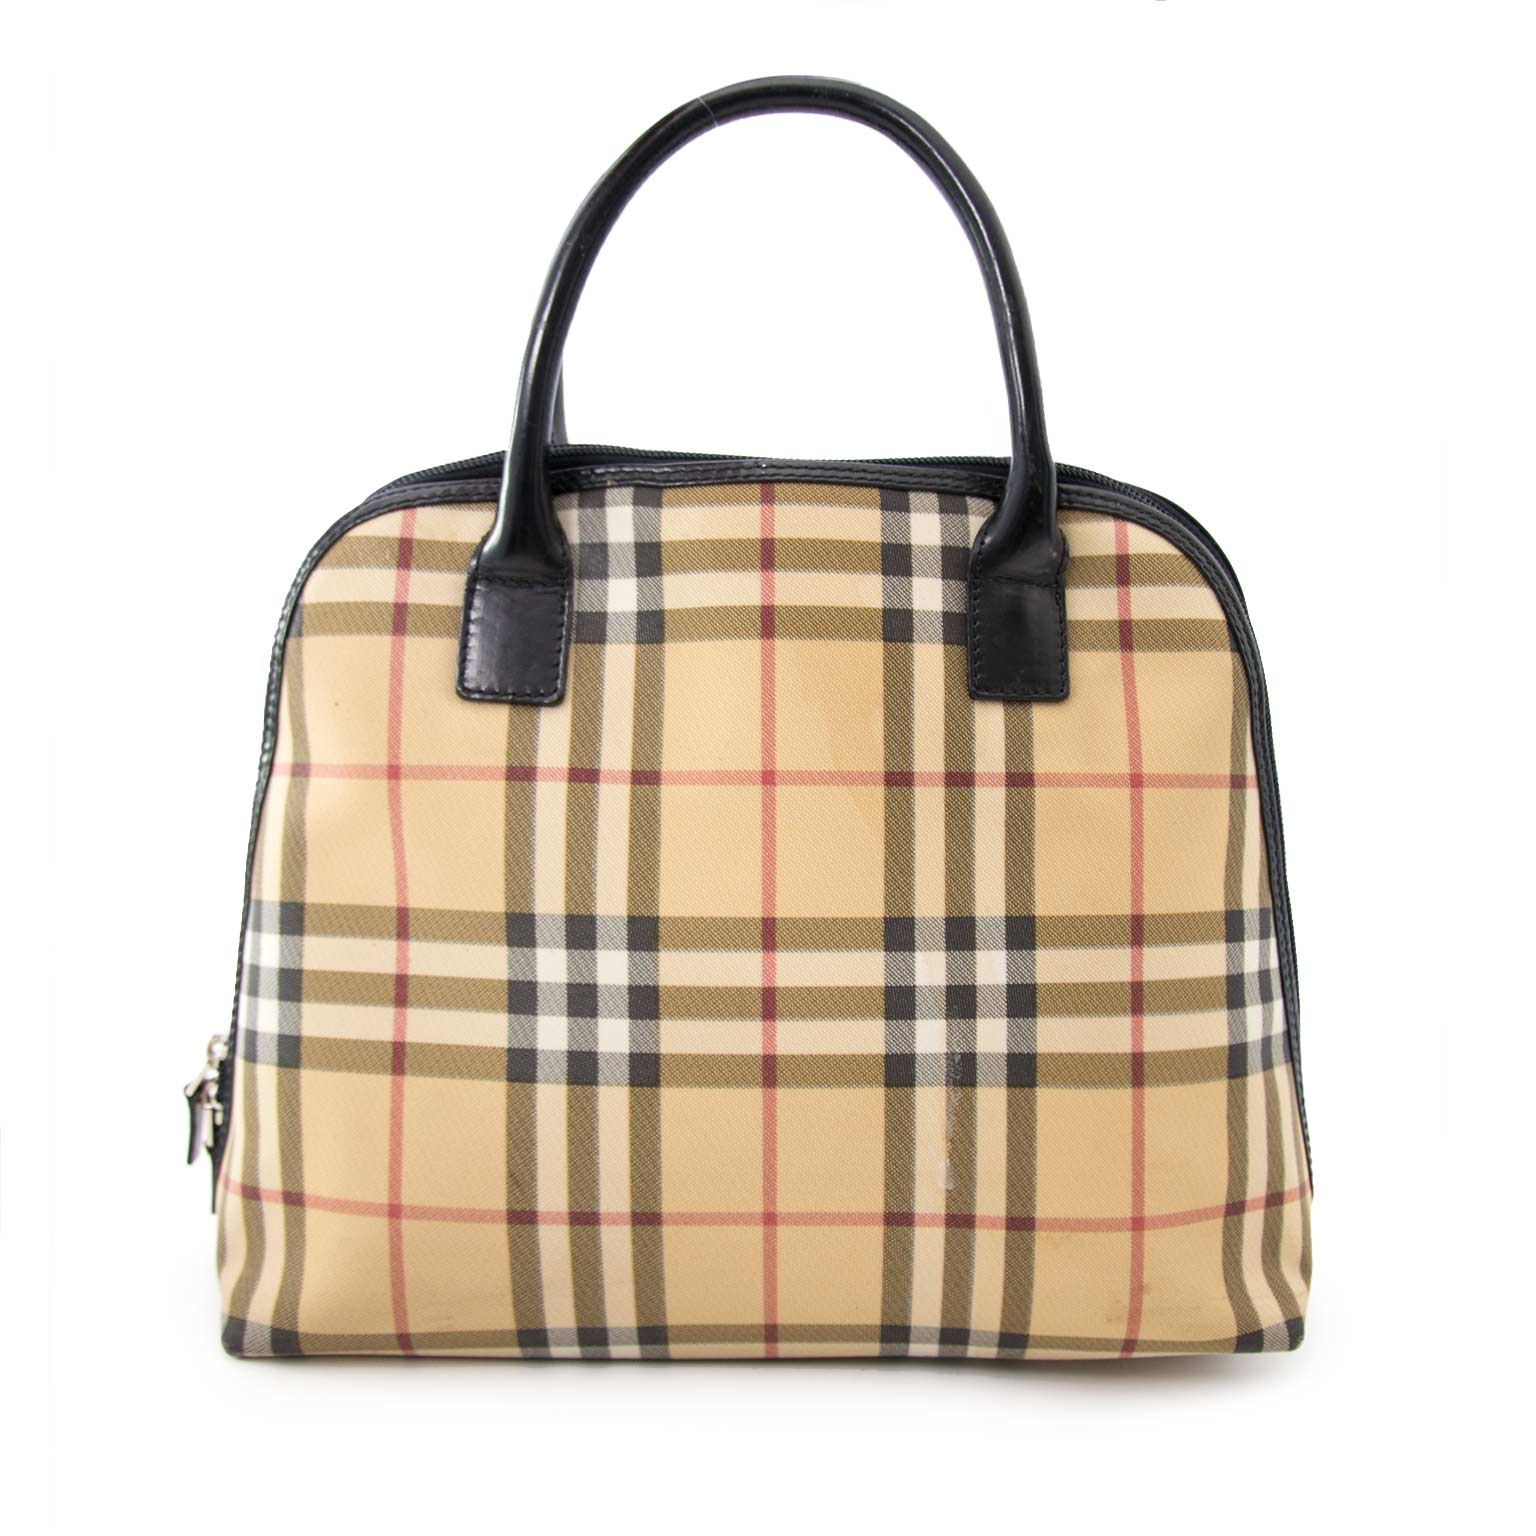 Burberry Alma Bag for sale online at Labellov secondhand luxury webshop for the best price